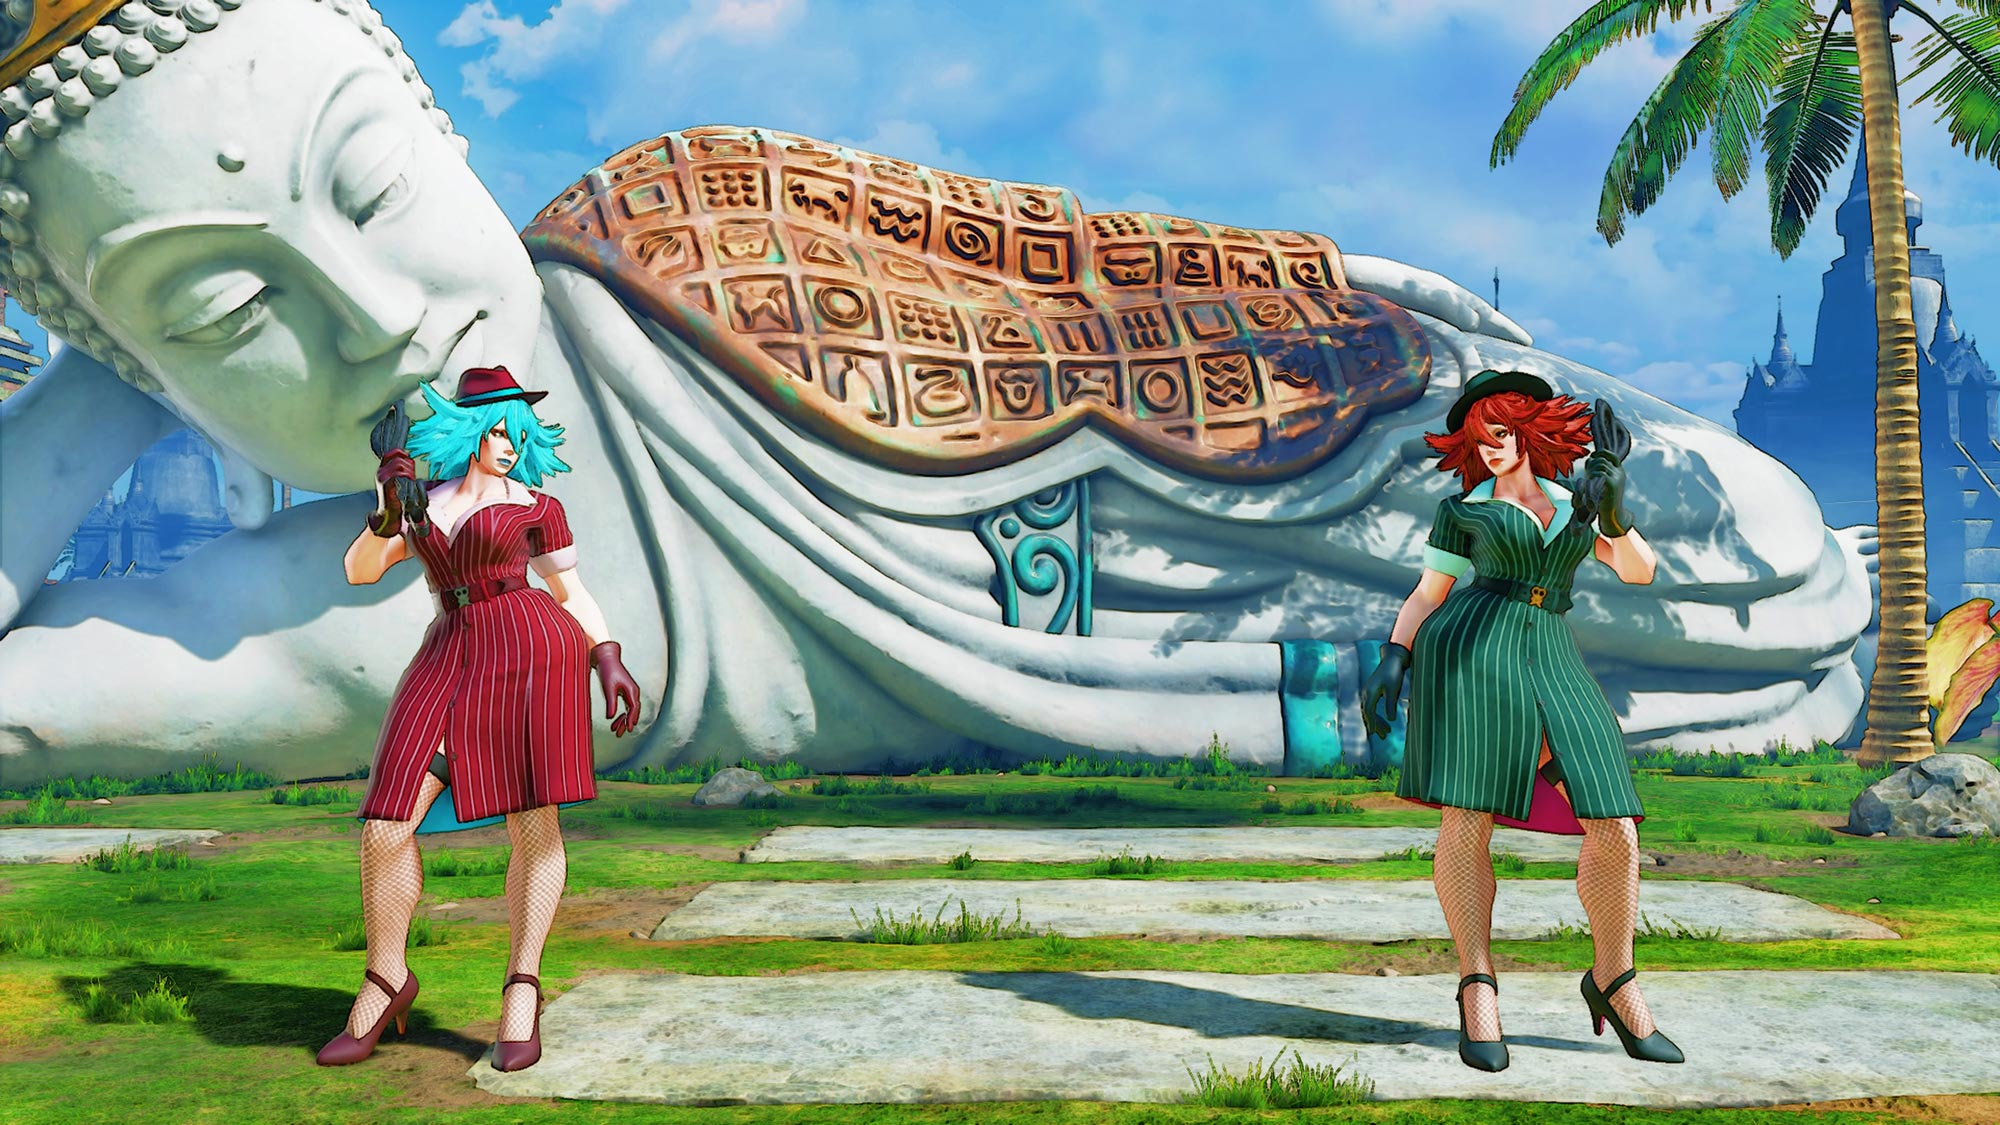 Poison's costume colors in Street Fighter 5 8 out of 22 image gallery